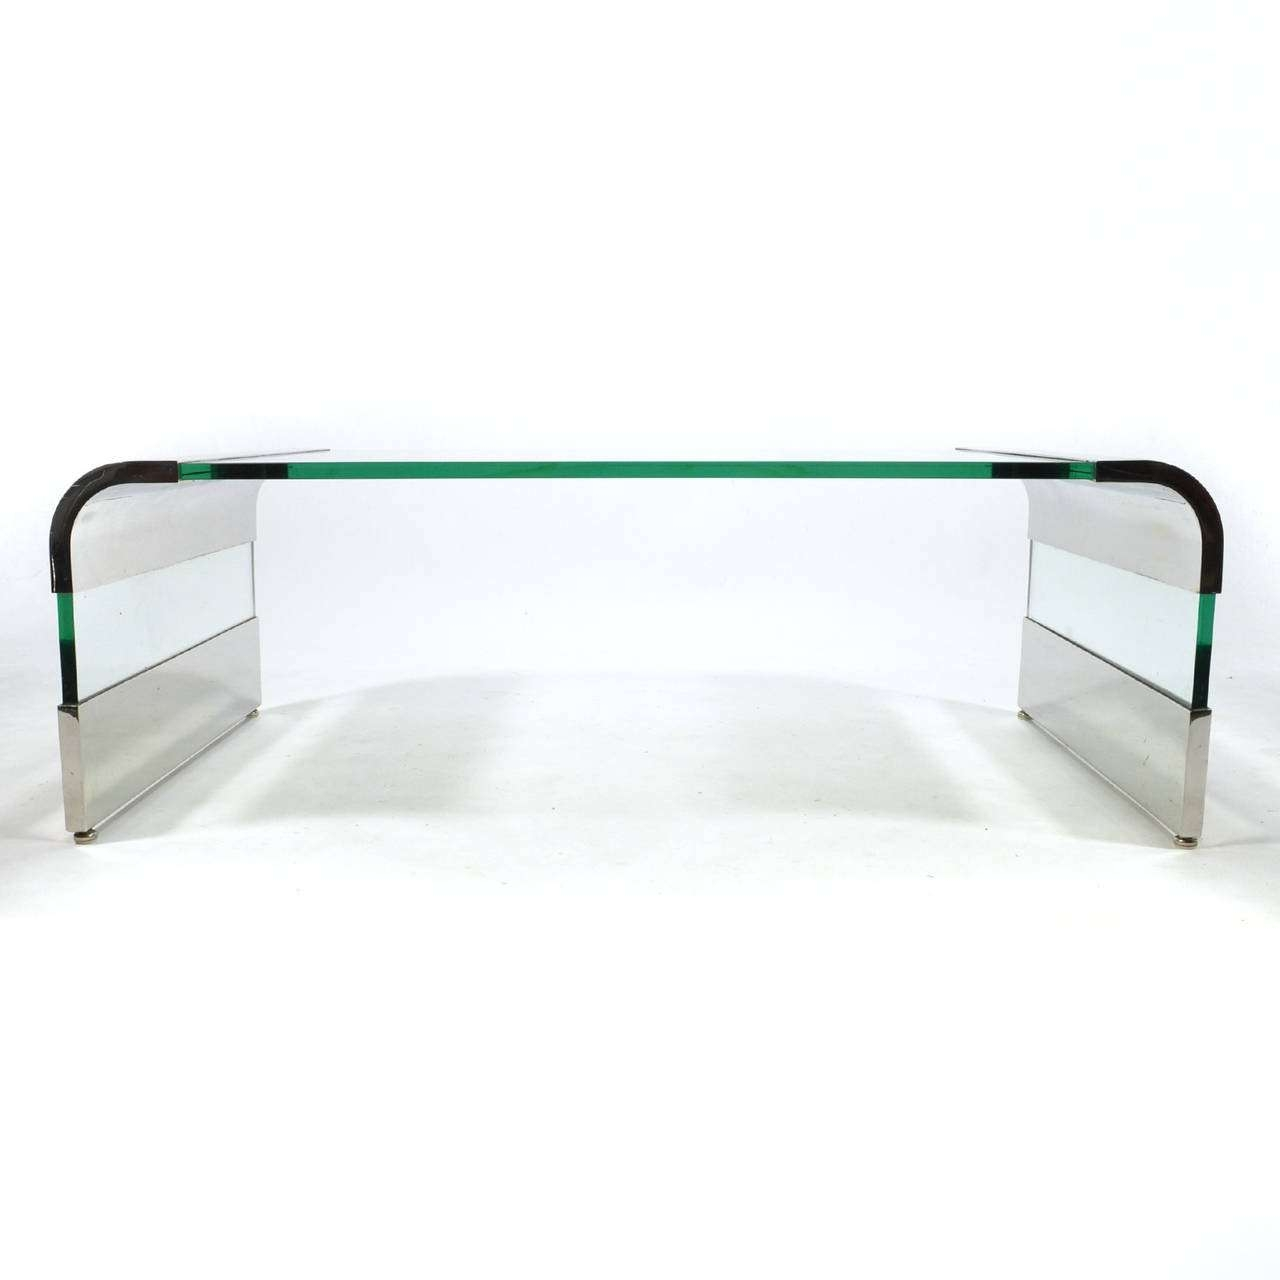 2017 Chrome Glass Coffee Tables Regarding Leon Rosen Chrome And Glass Waterfall Coffee Tablepace For (View 2 of 20)